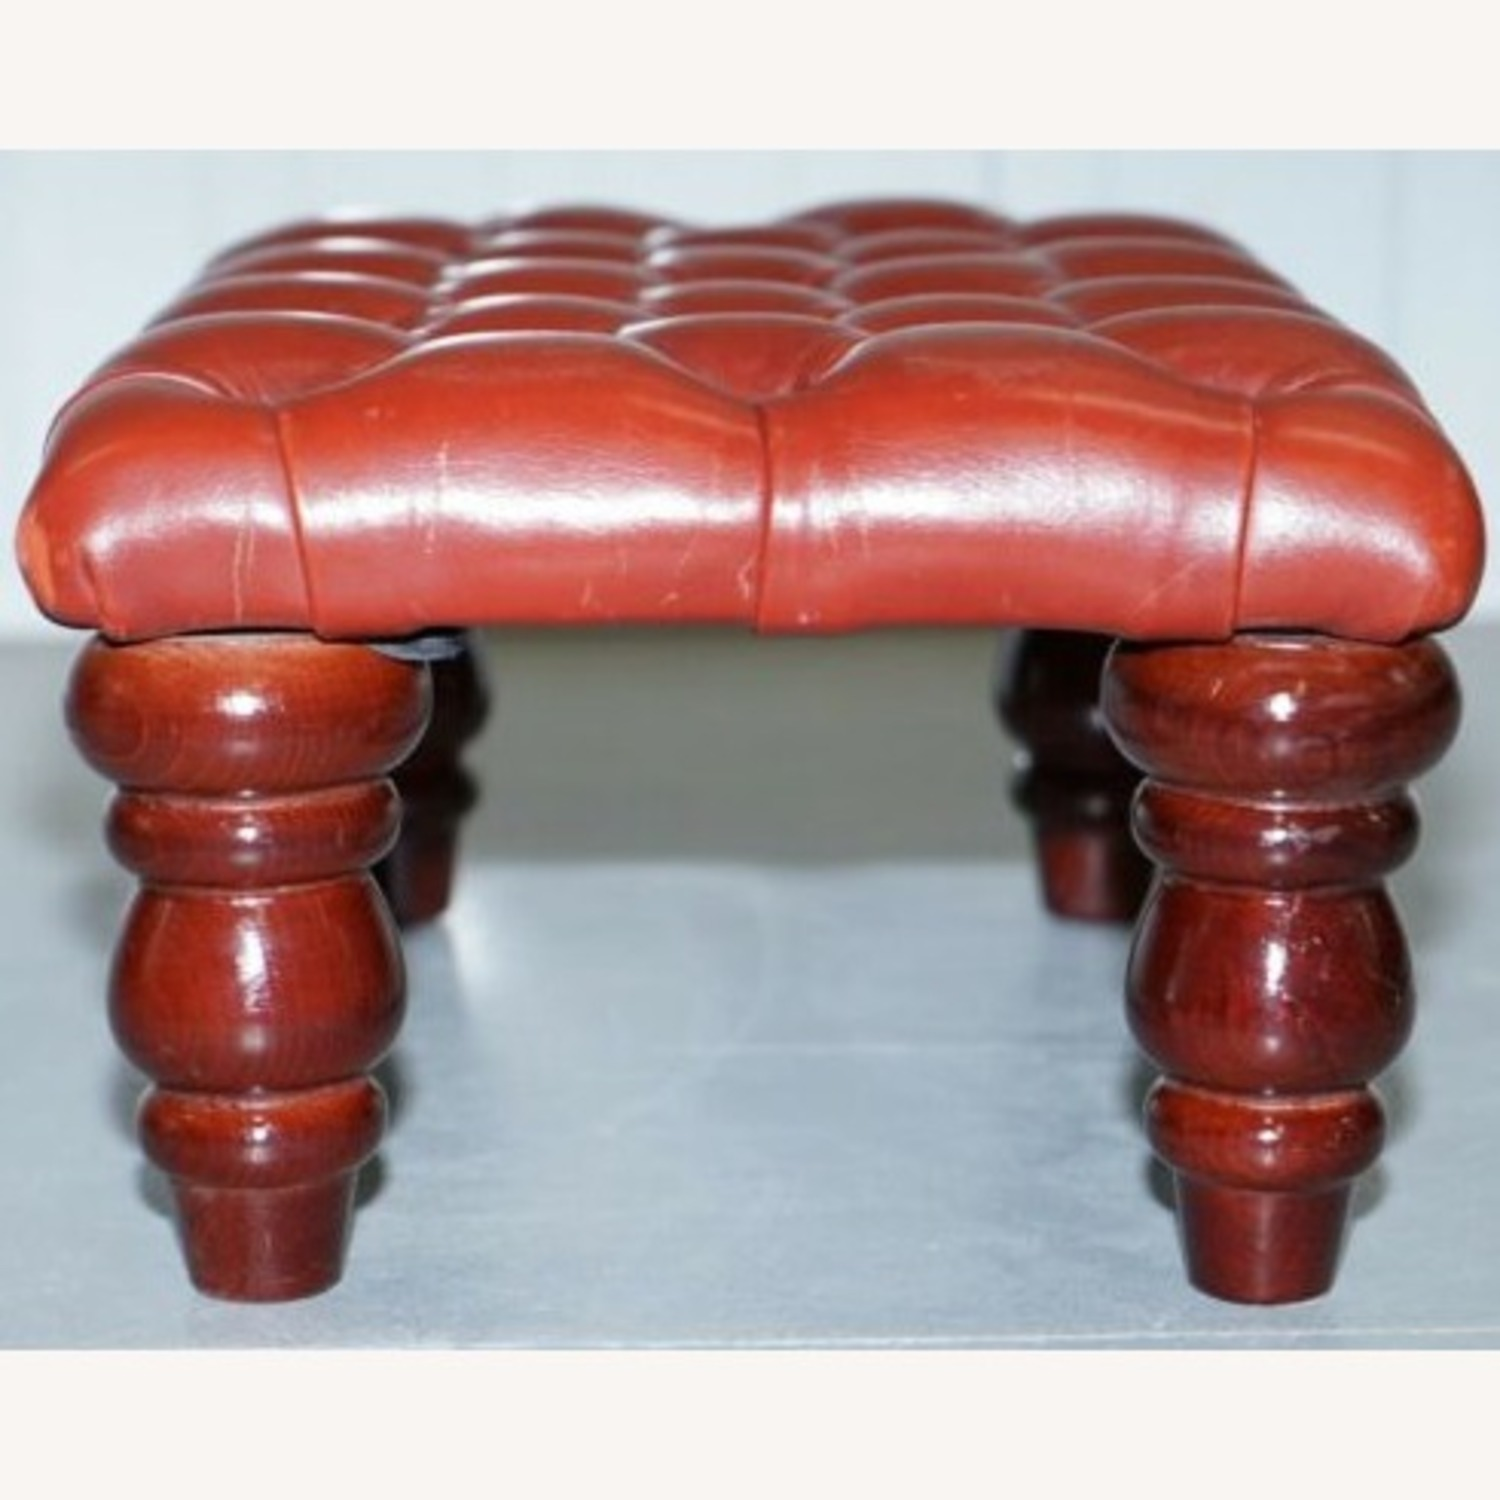 Vintage Handcrafted Oxblood Chesterfield Footstool - image-3